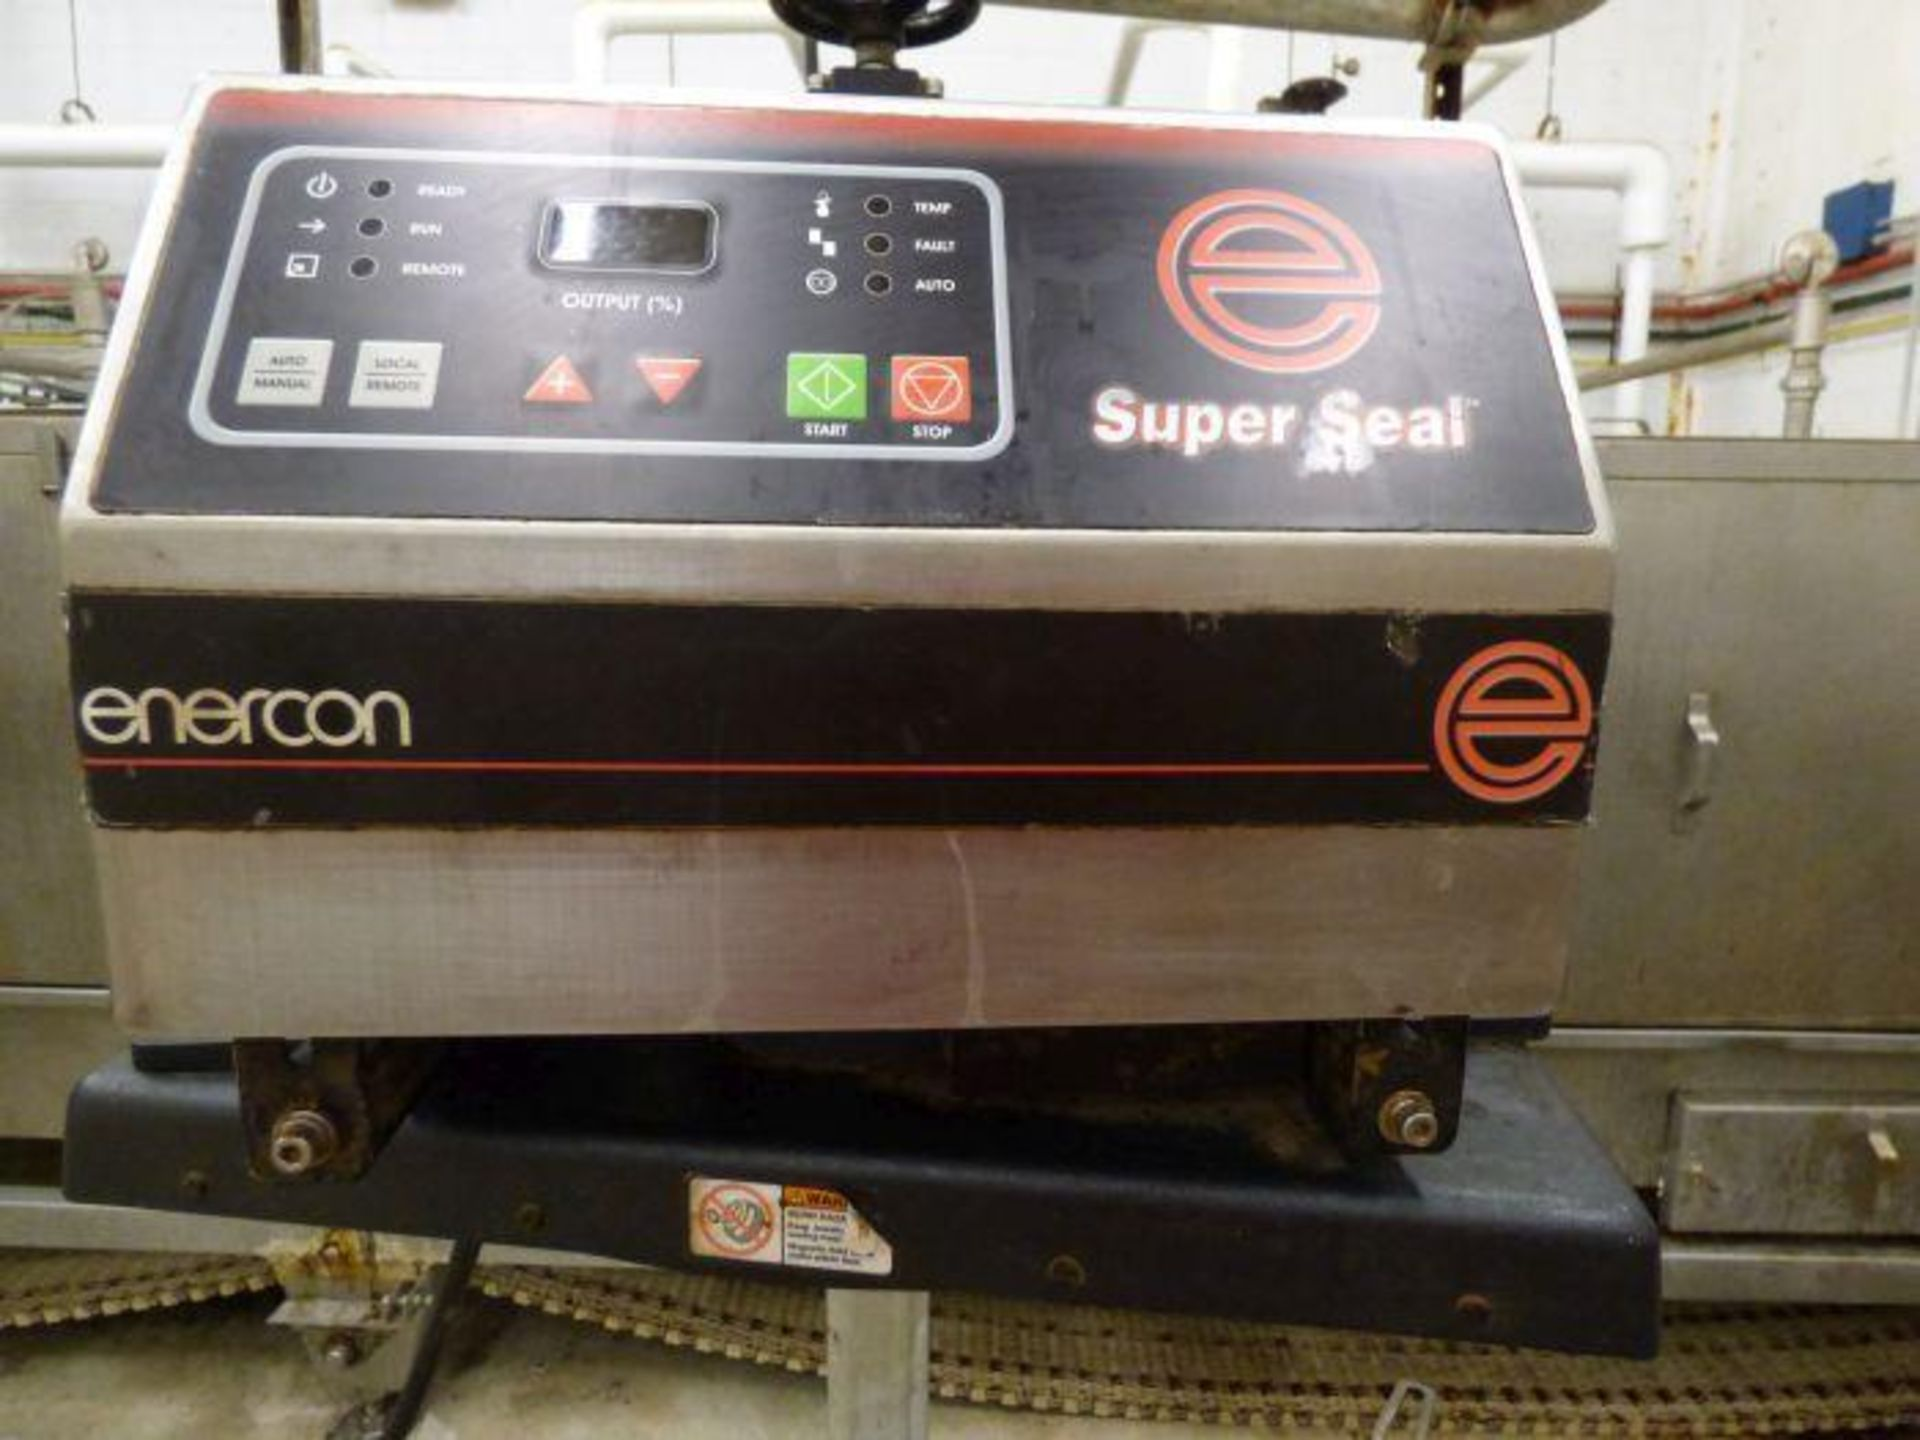 Enercon Super Seal Touch 100 with Spare Parts - Image 15 of 17